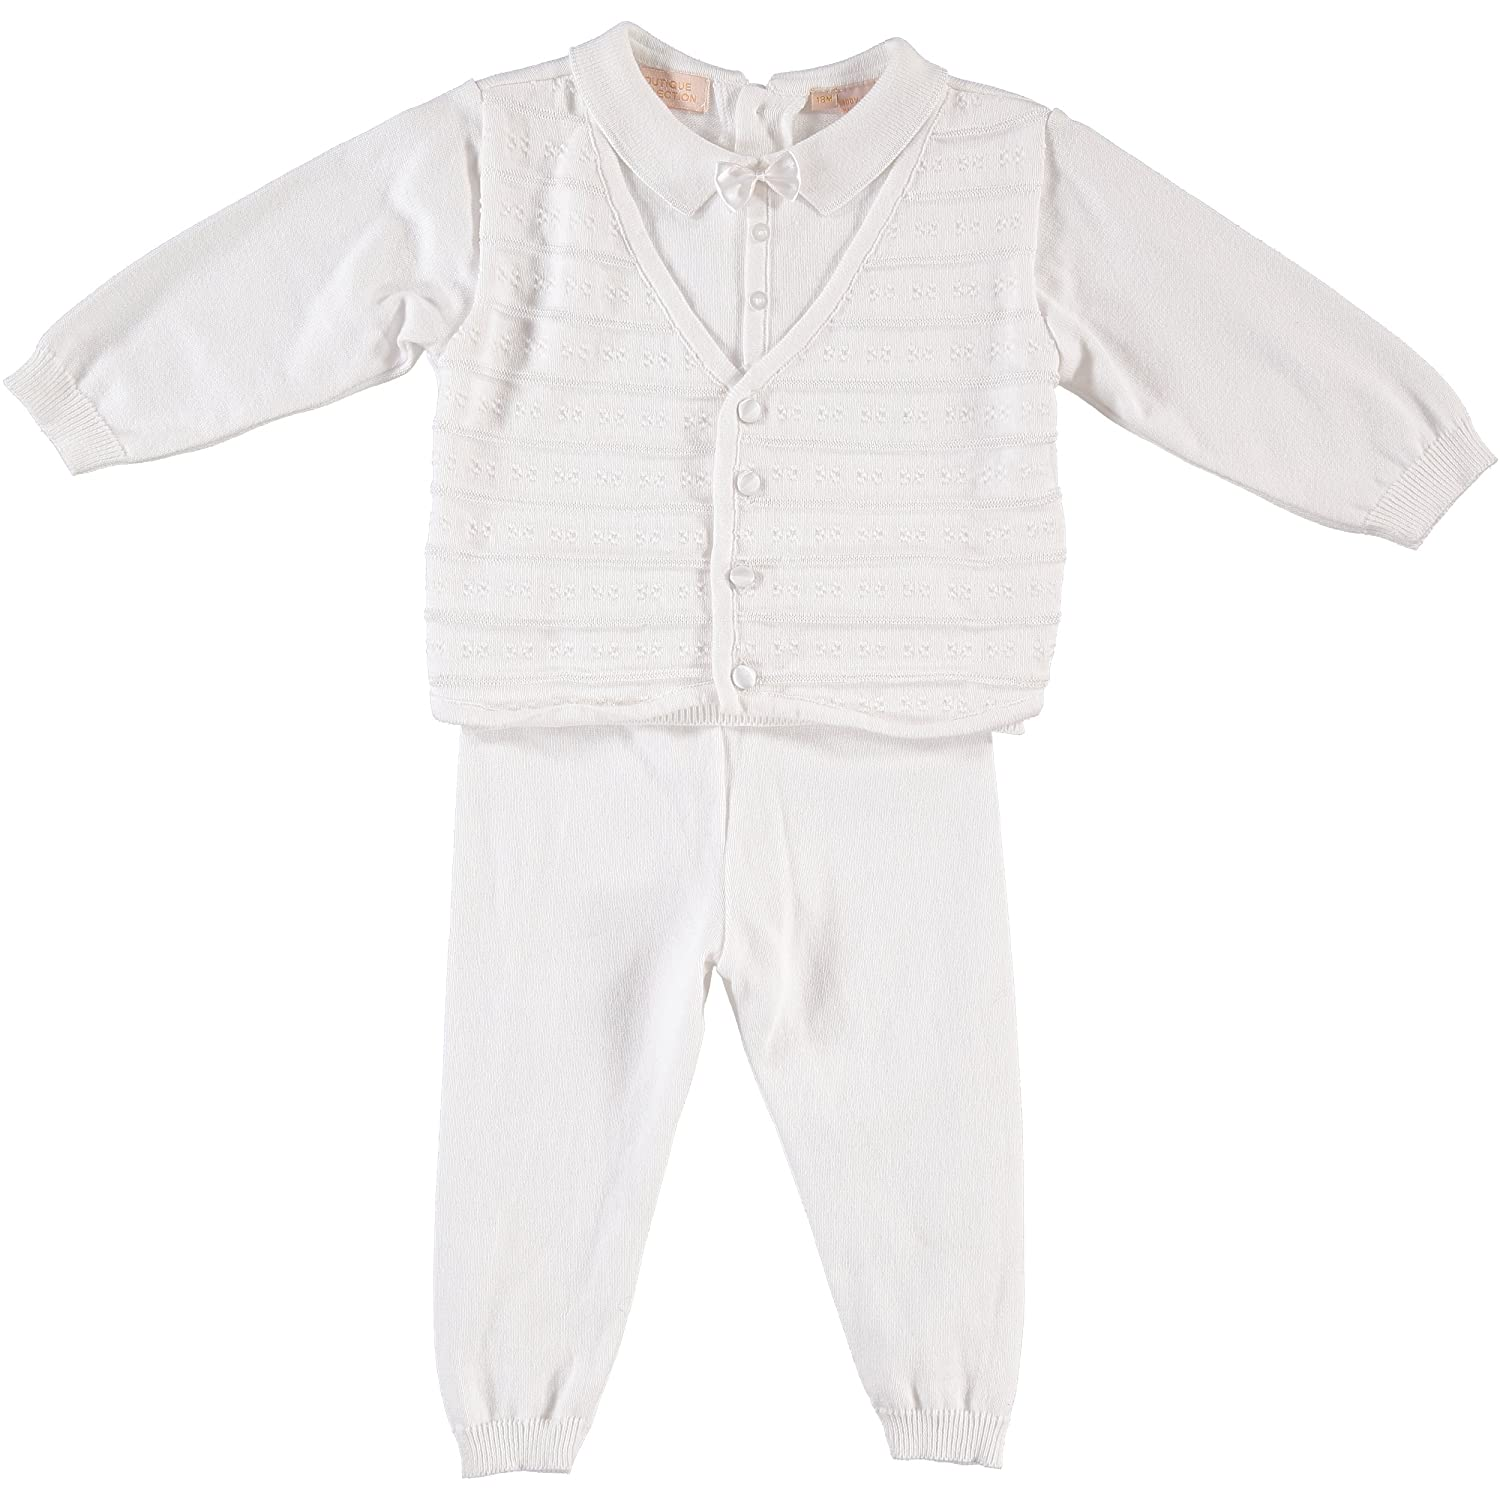 Baby Boys' 2 Piece Christening Outfit with attached Vest and Hat